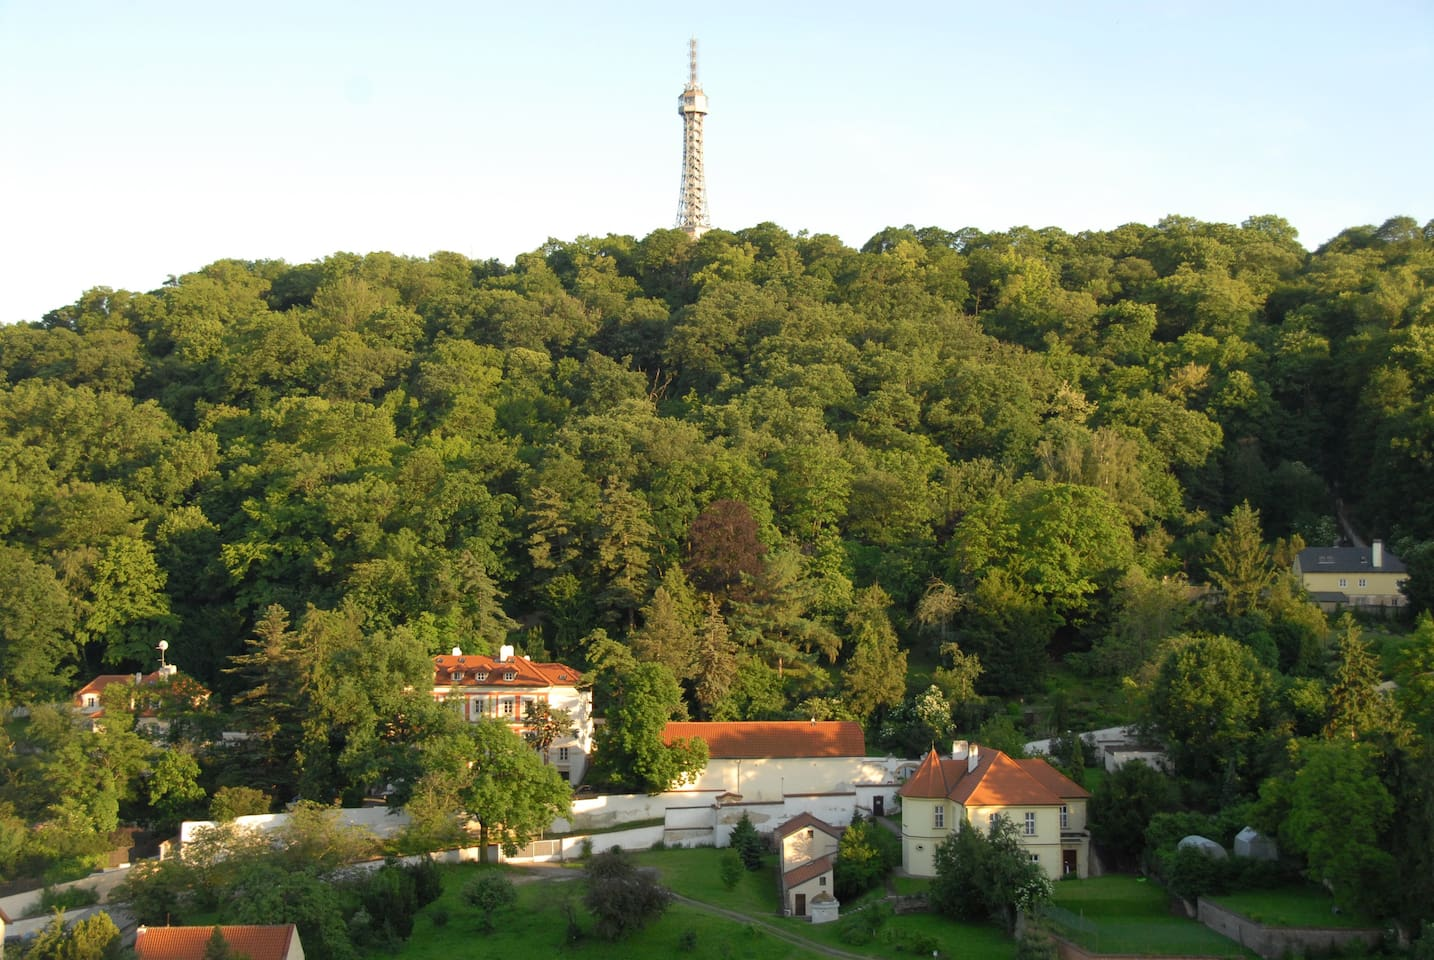 View from windows - Petrin Park makes central city almost countryside. Great for walks, drinks, runs, etc.